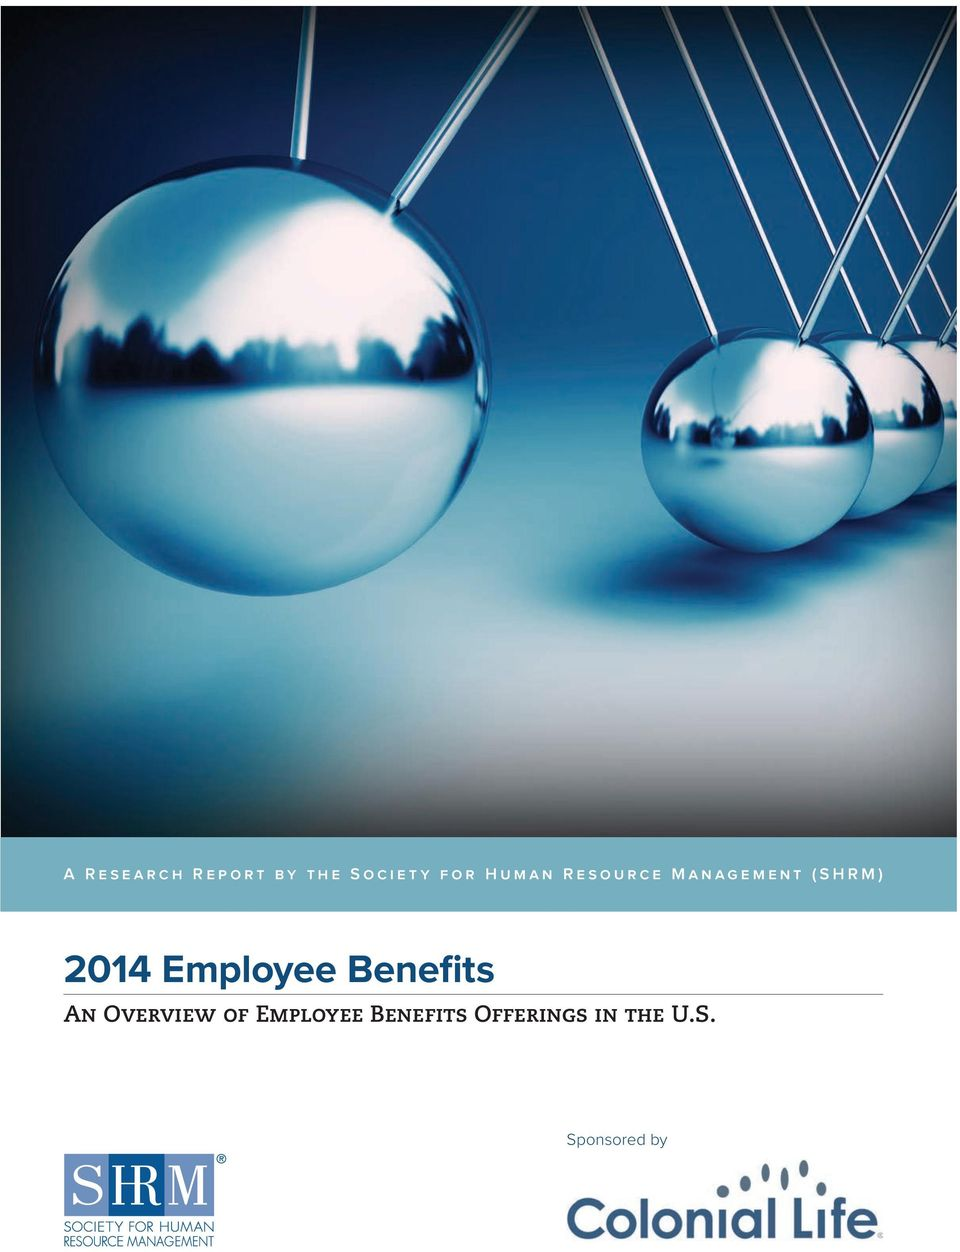 Employee Benefits An Overview of